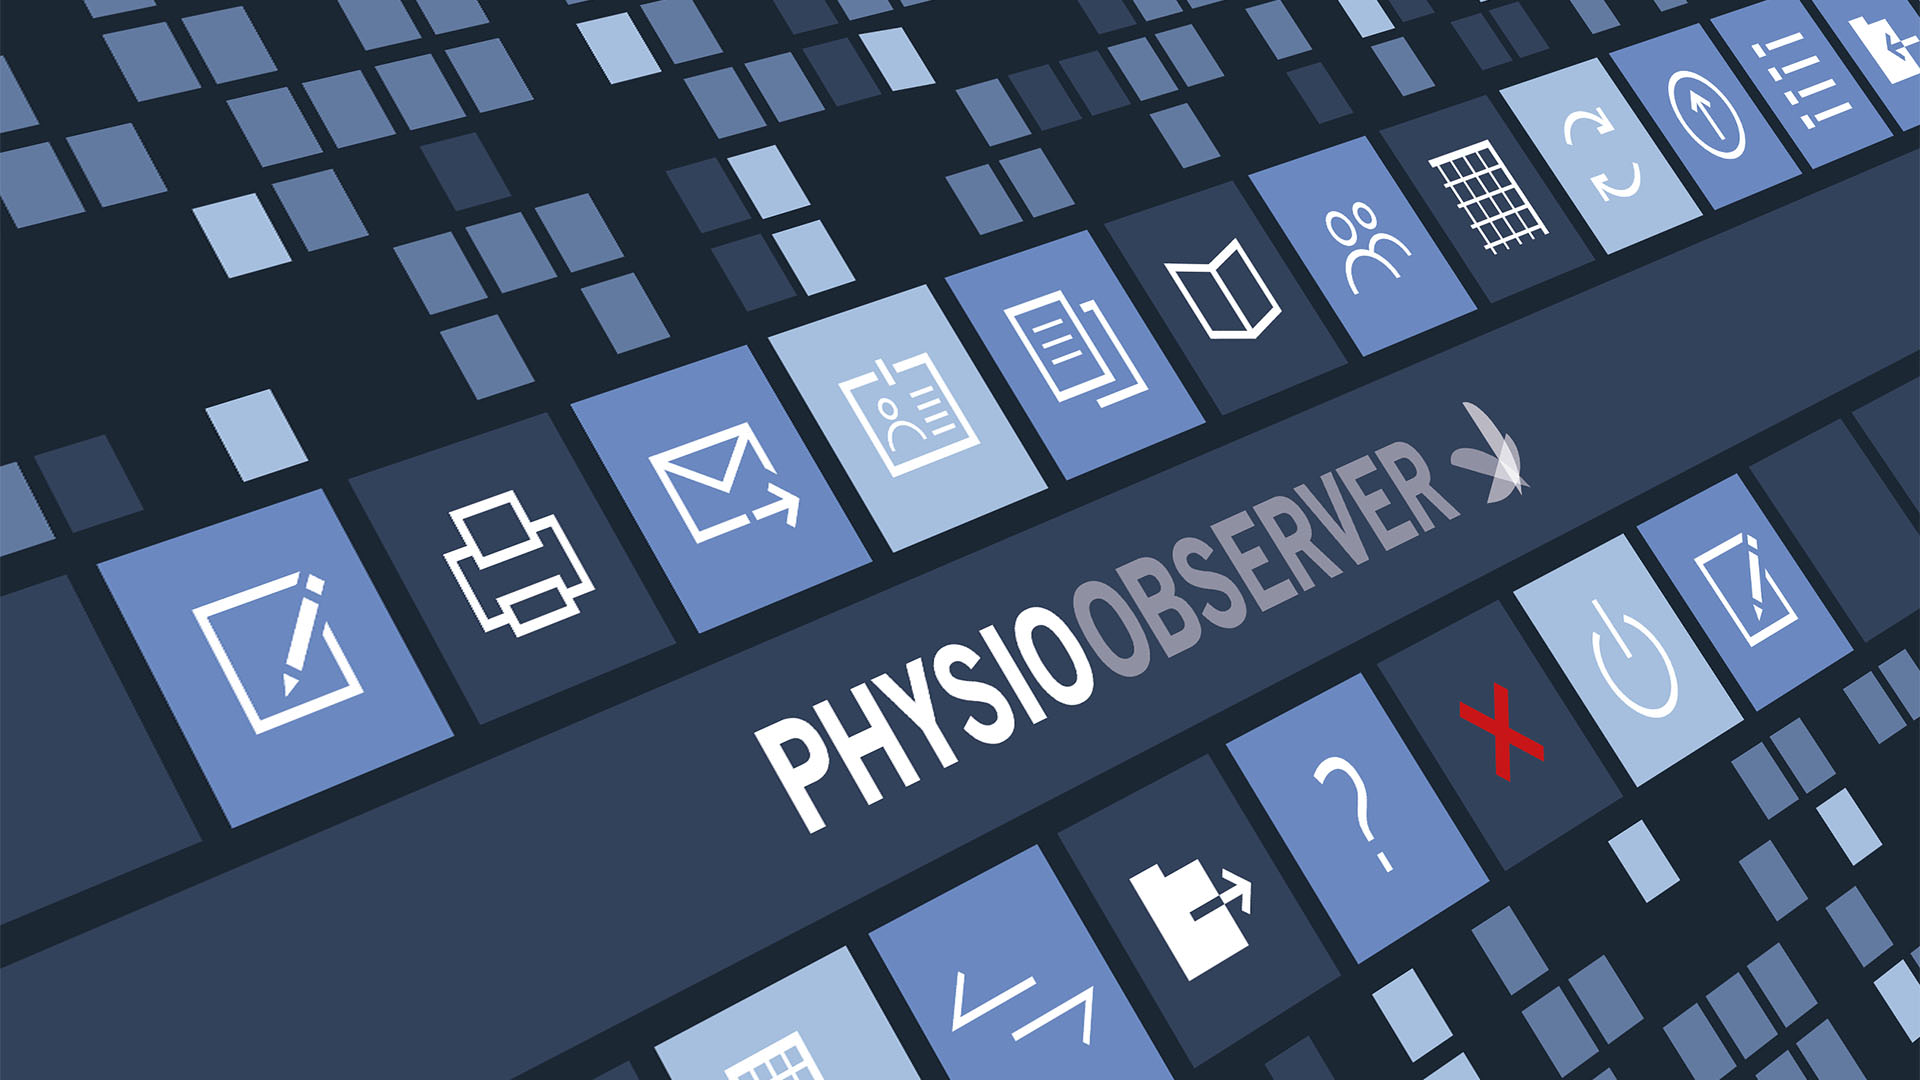 beste physiotherapie praxissoftware